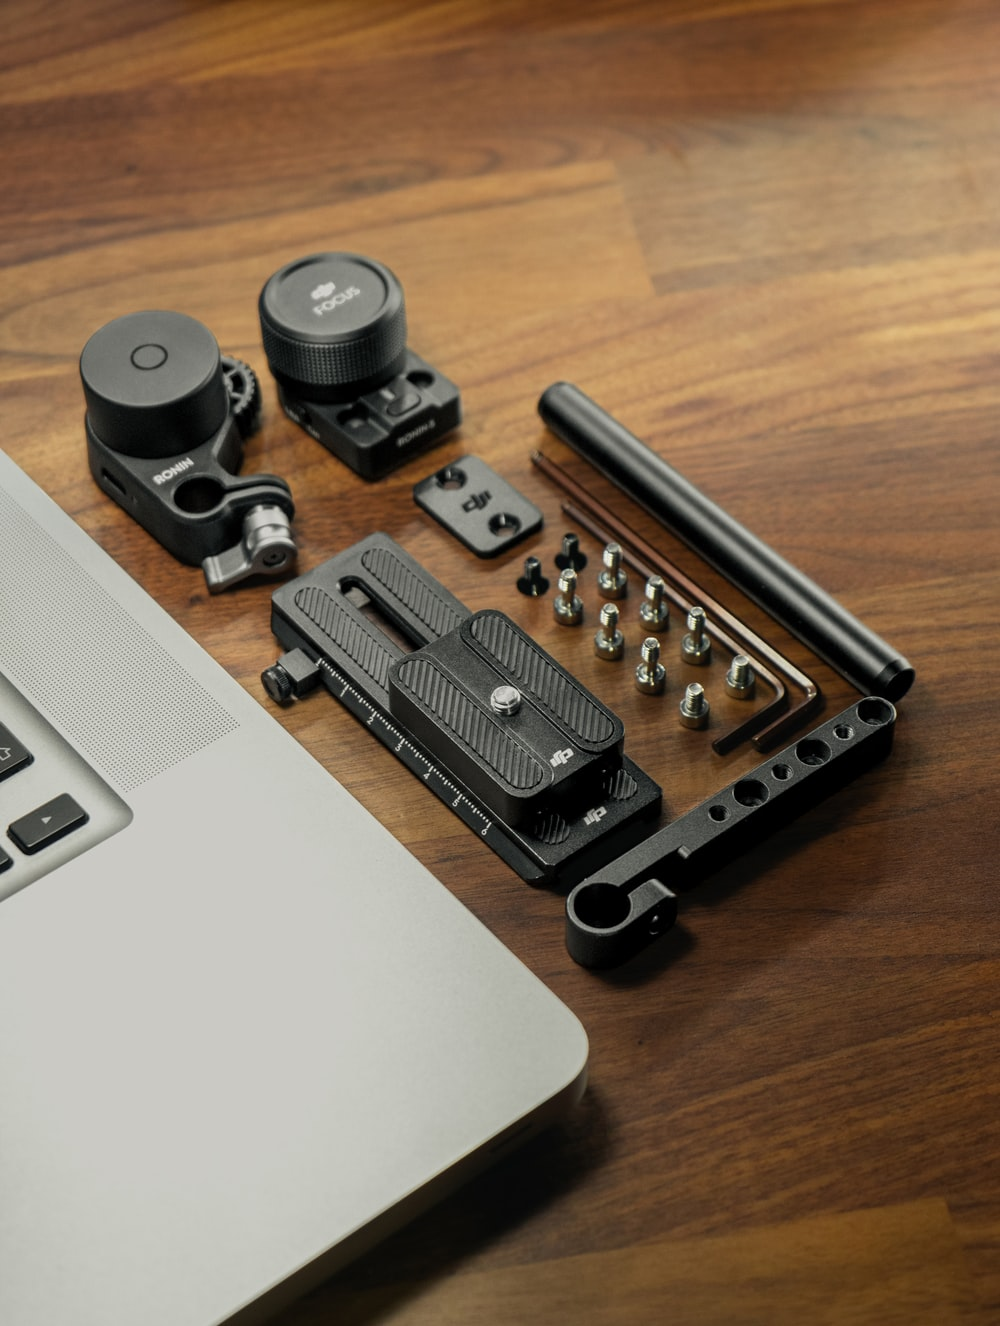 black and silver camera lens beside black and silver laptop computer